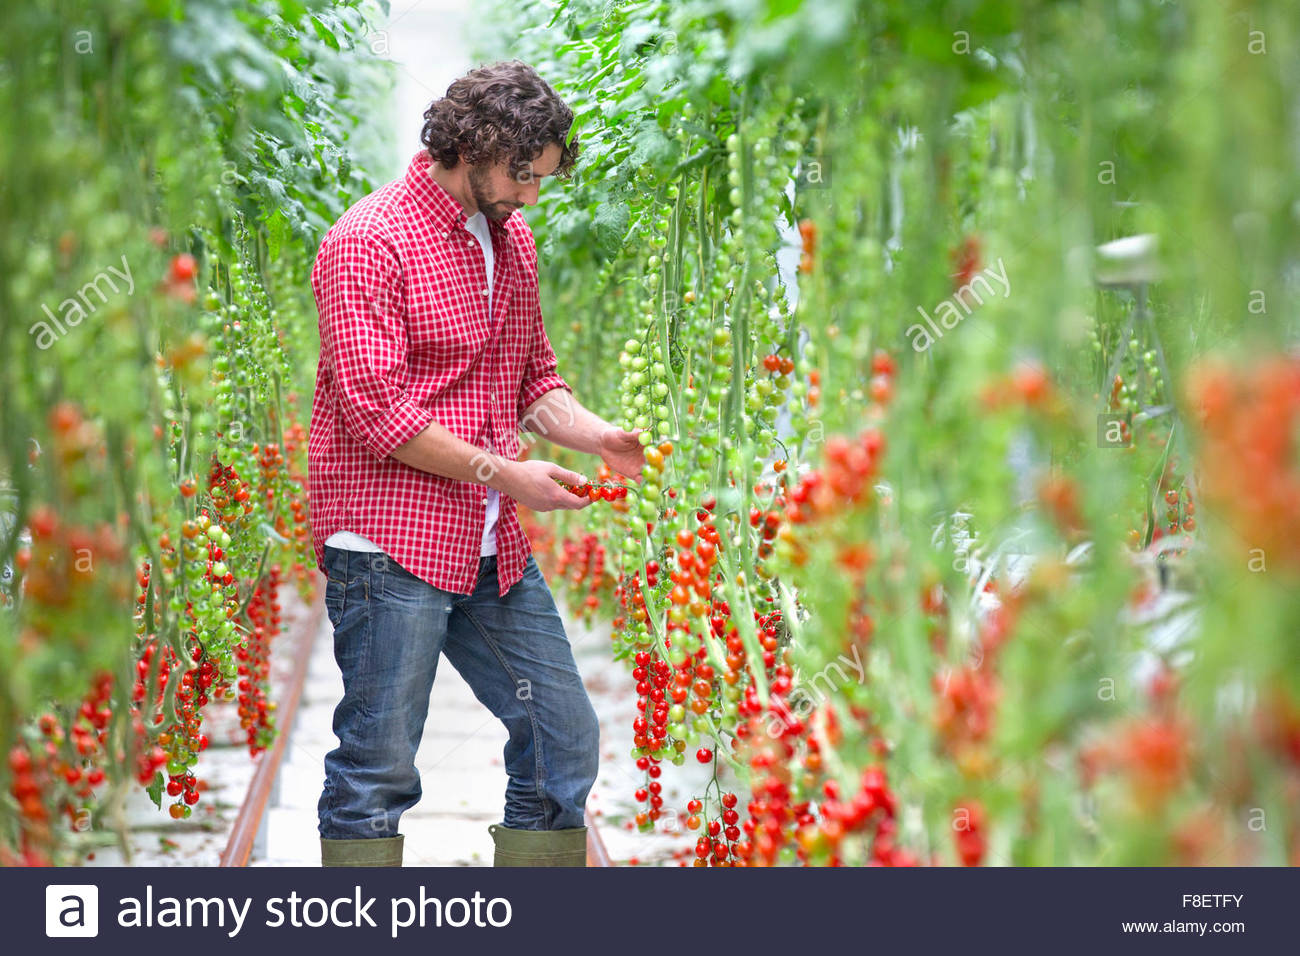 Worker inspecting vine tomato plants in greenhouse - Stock Image